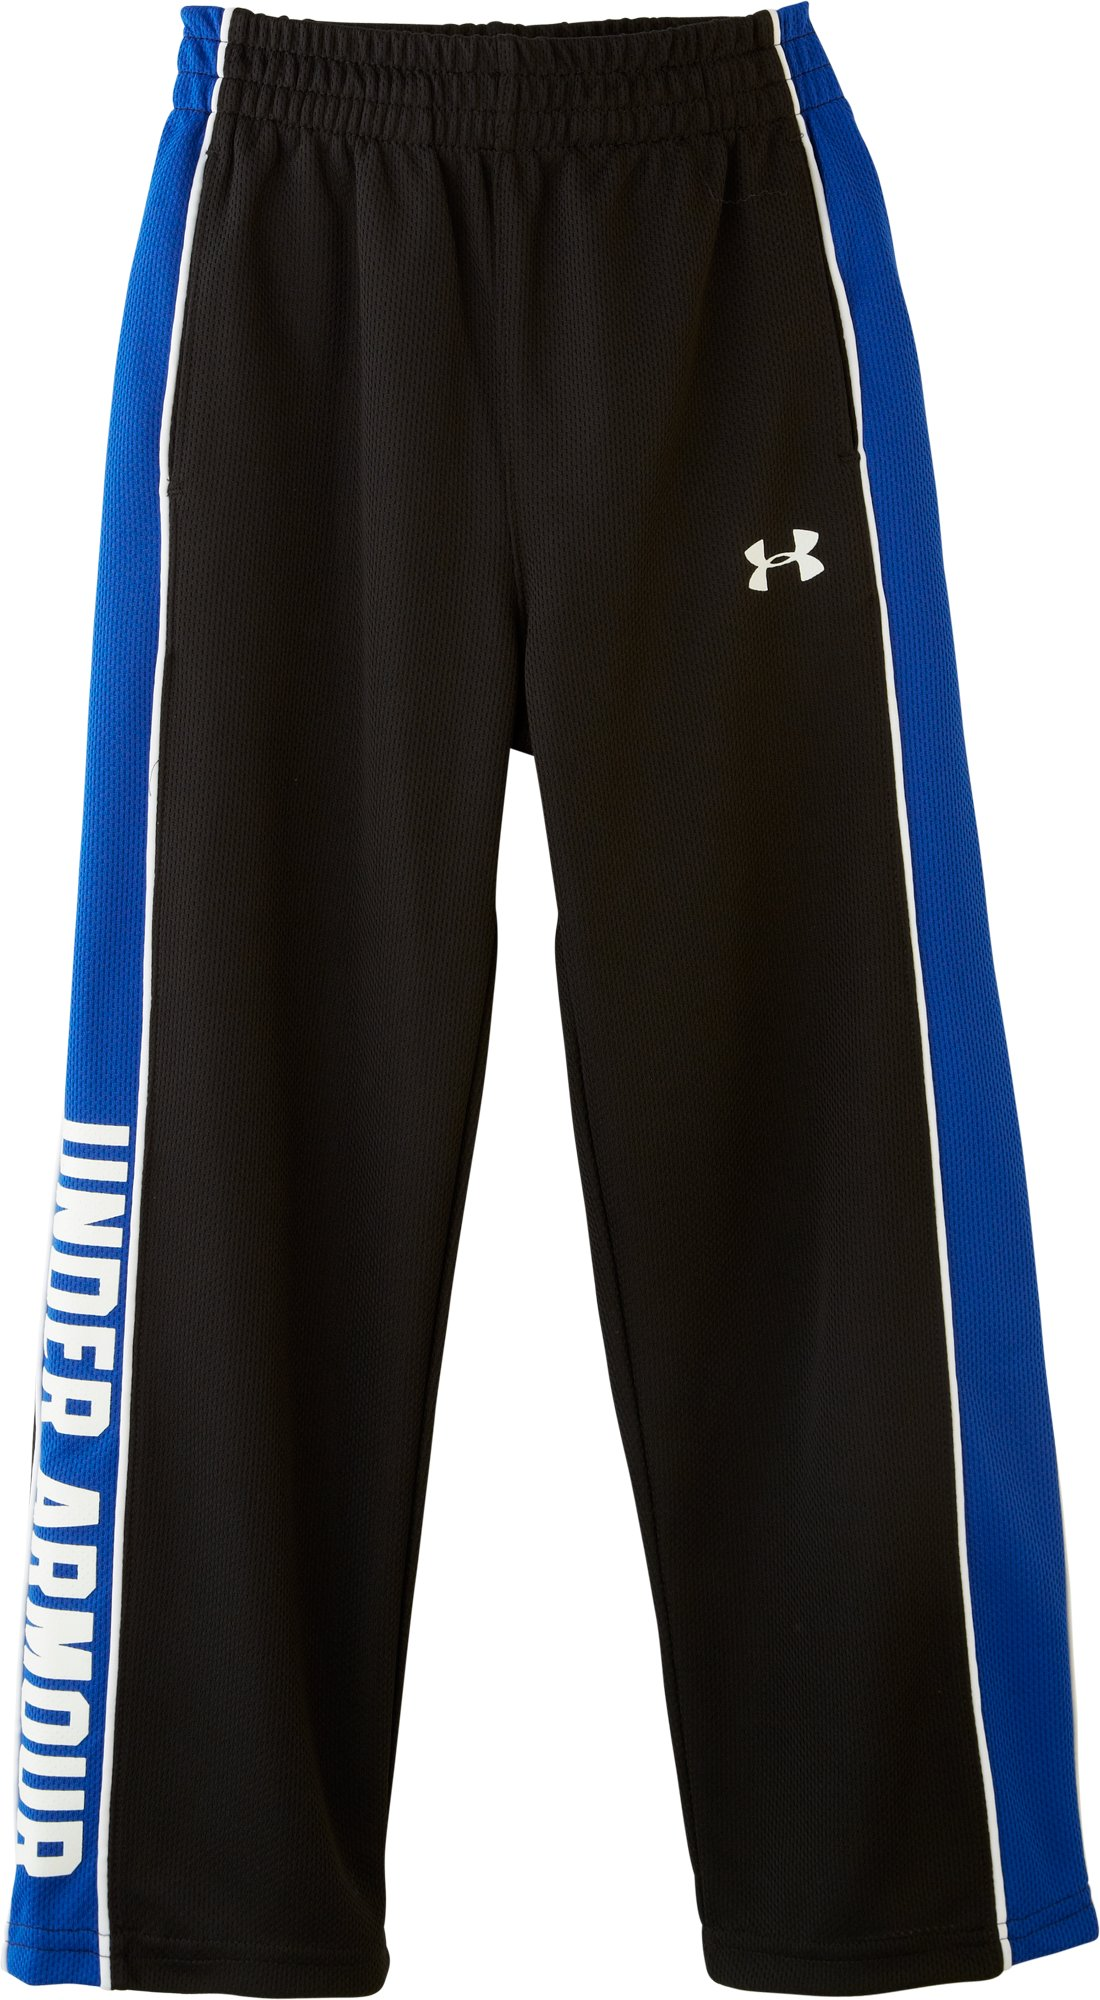 Boys' Pre-School UA Brawler Pants, Black